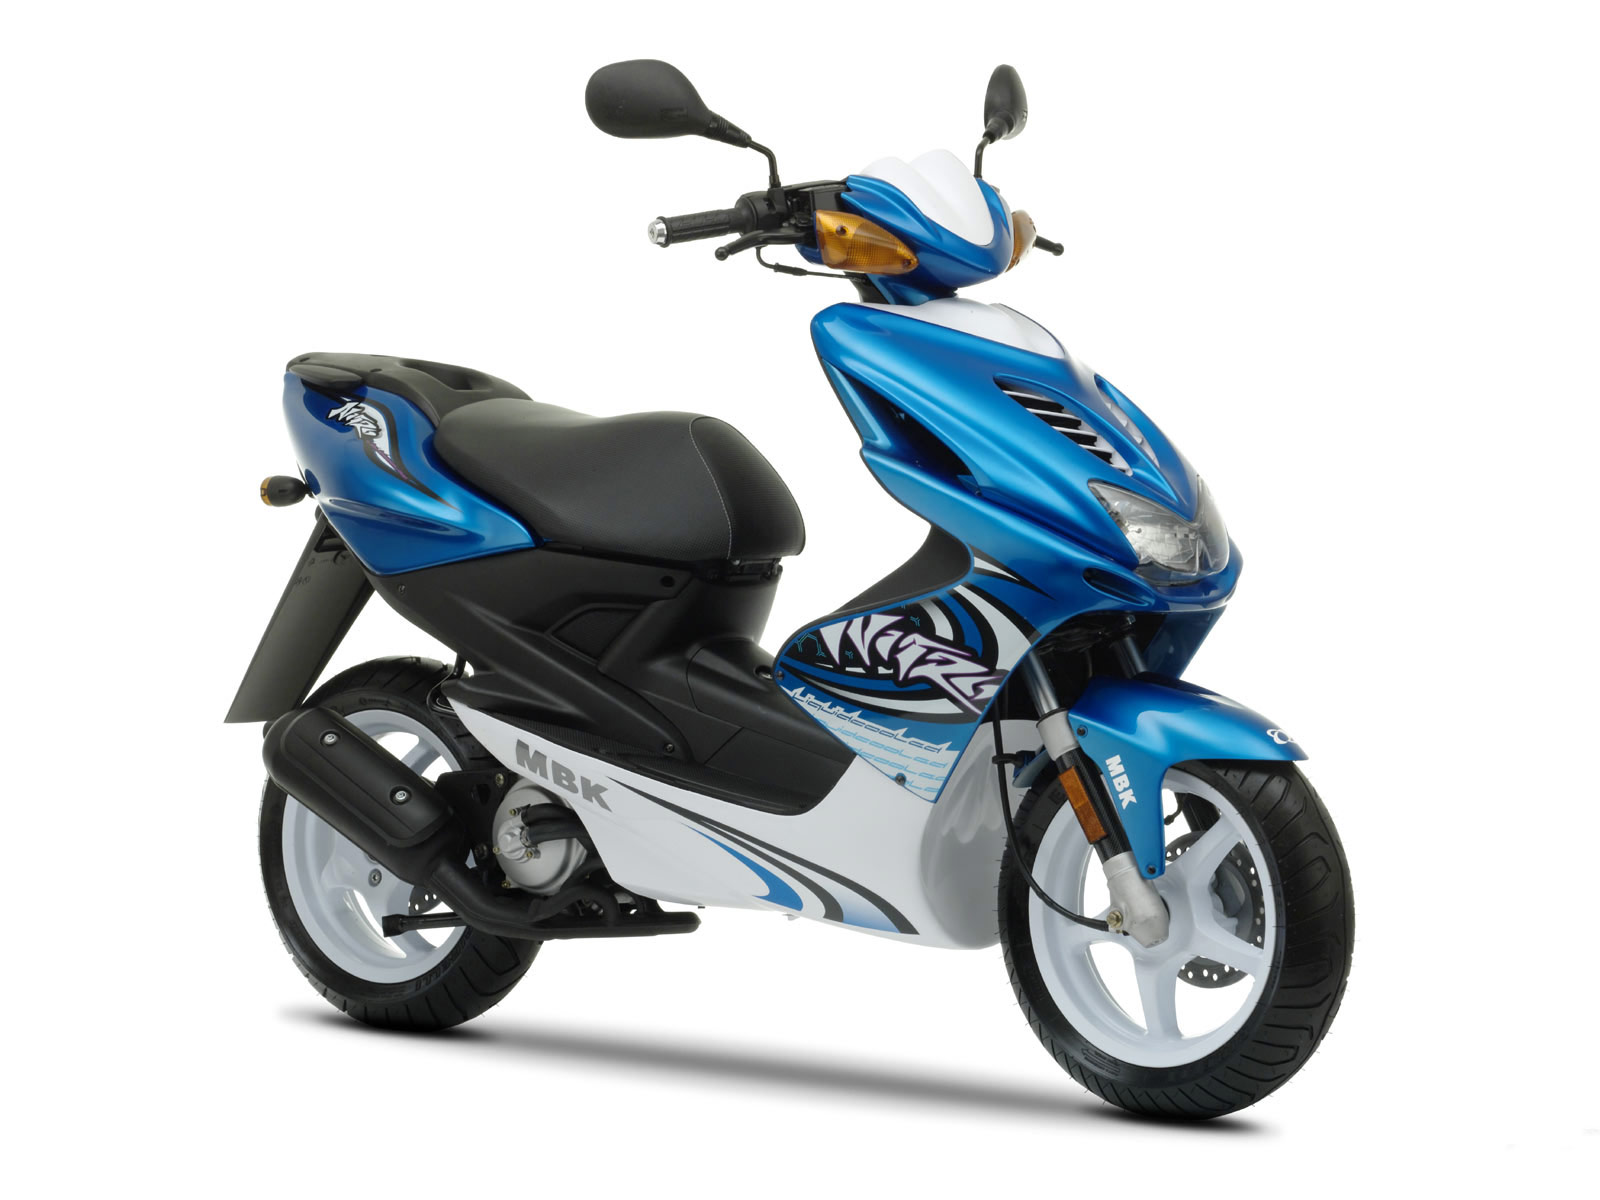 2009 Mbk Nitro Scooter Picture Specifications Insurance